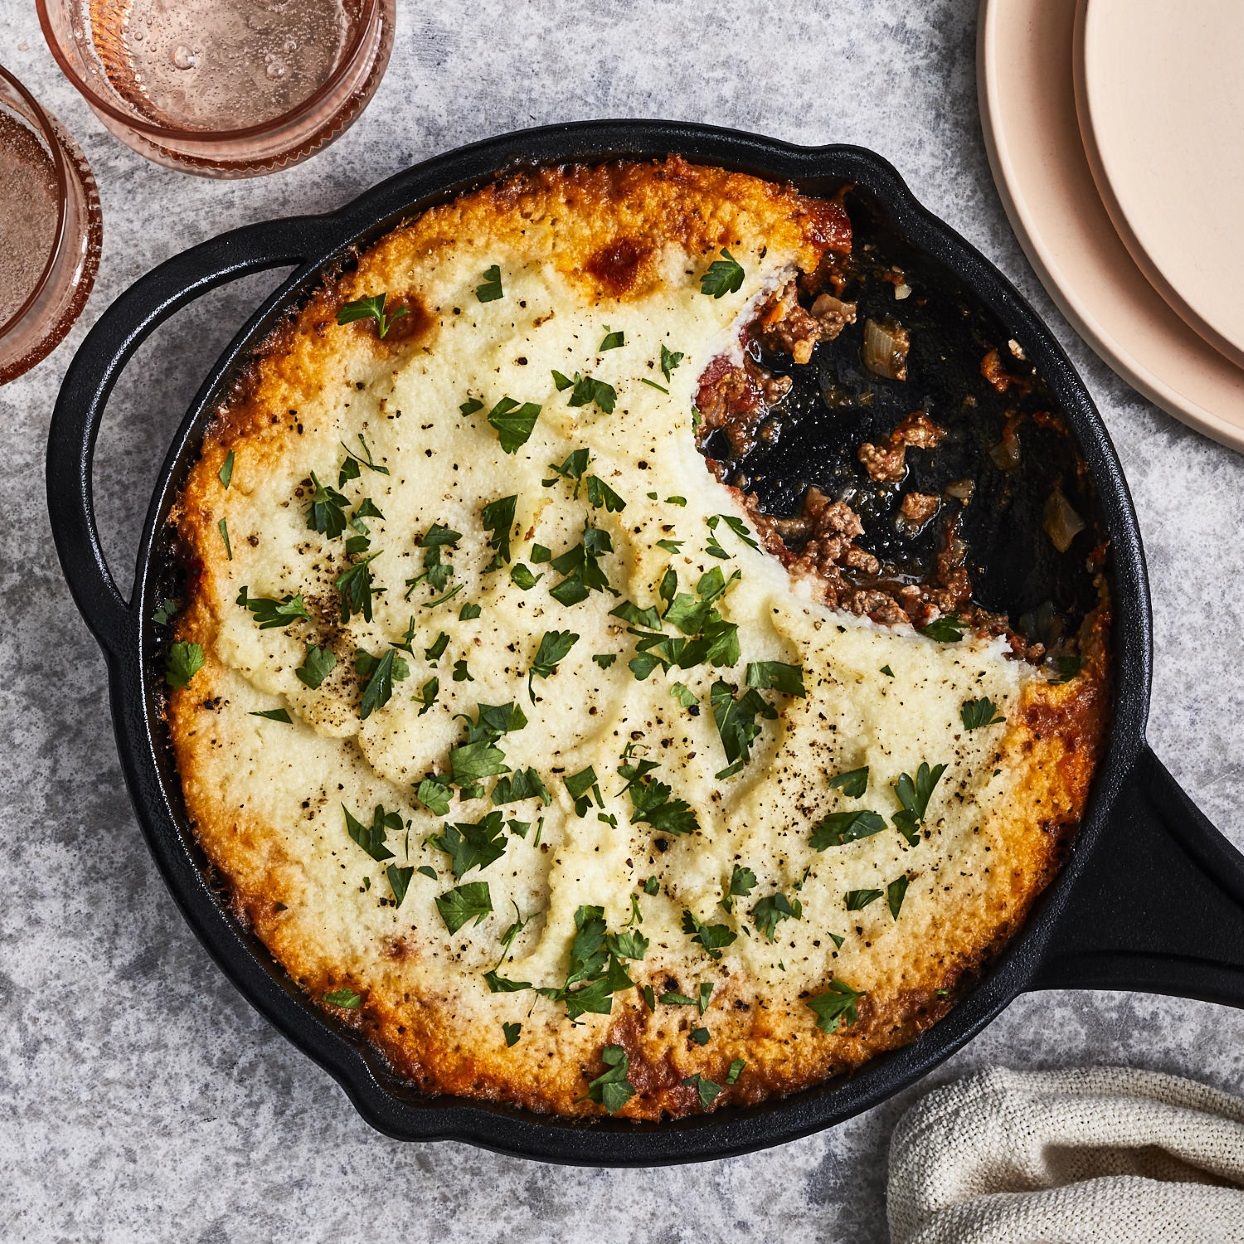 In this easy shepherd's pie recipe, we keep the carbs in check by using creamy mashed cauliflower in place of mashed potatoes. The ground beef filling is cooked in the same skillet used for baking the pie, making assembly (and cleanup) a breeze.